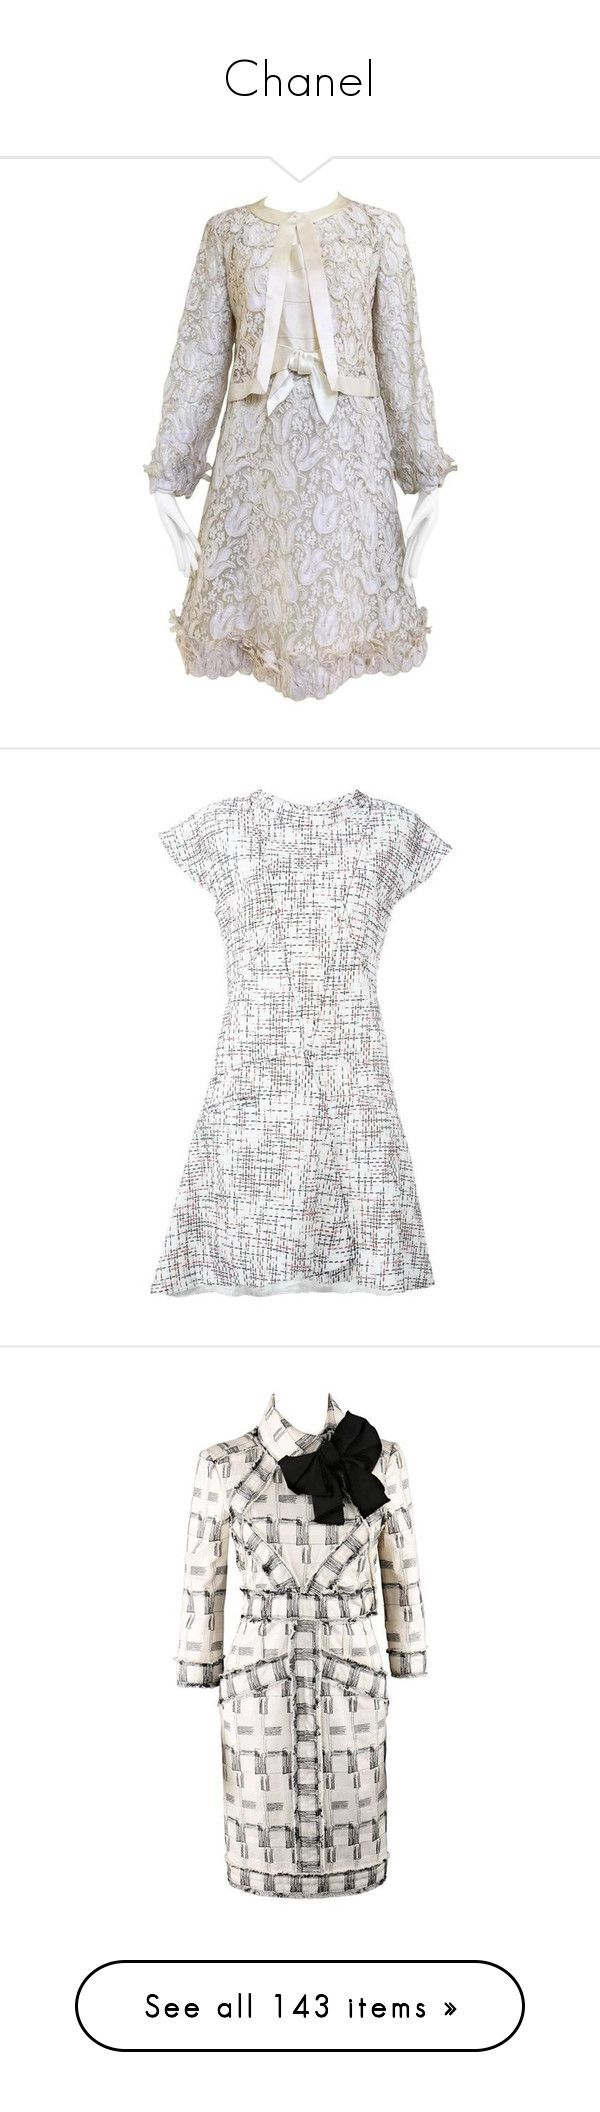 """Chanel"" by arantxaherrera ❤ liked on Polyvore featuring dresses, cocktail dresses, grey, cream cocktail dress, grey dresses, vintage dresses, vintage lace cocktail dress, vintage lace dress, casual dresses and skater skirt"